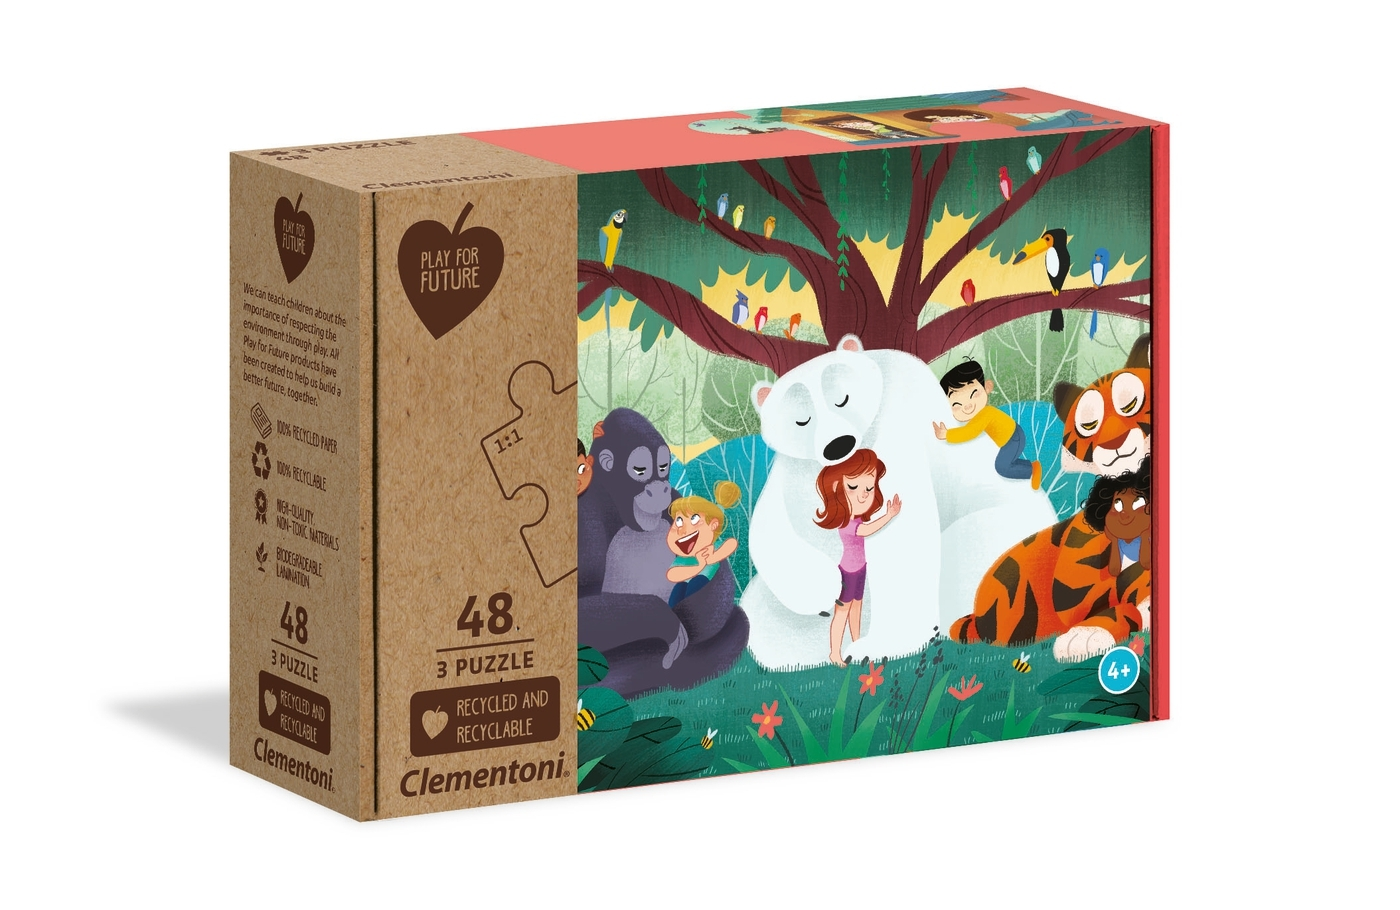 Puzzle Play for Future 3x48: Fantasyland (25253)